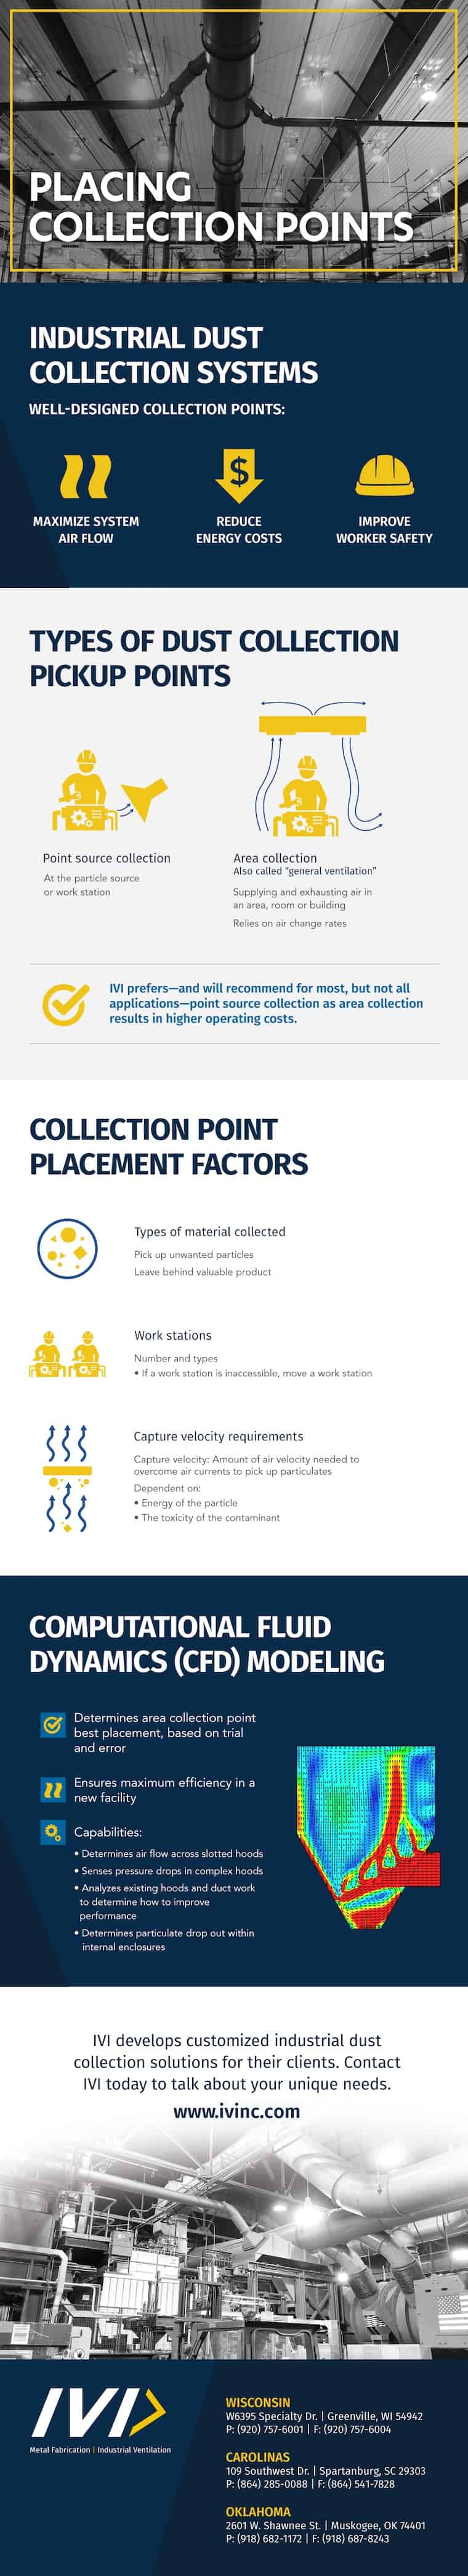 Infographic about placing dust collection points